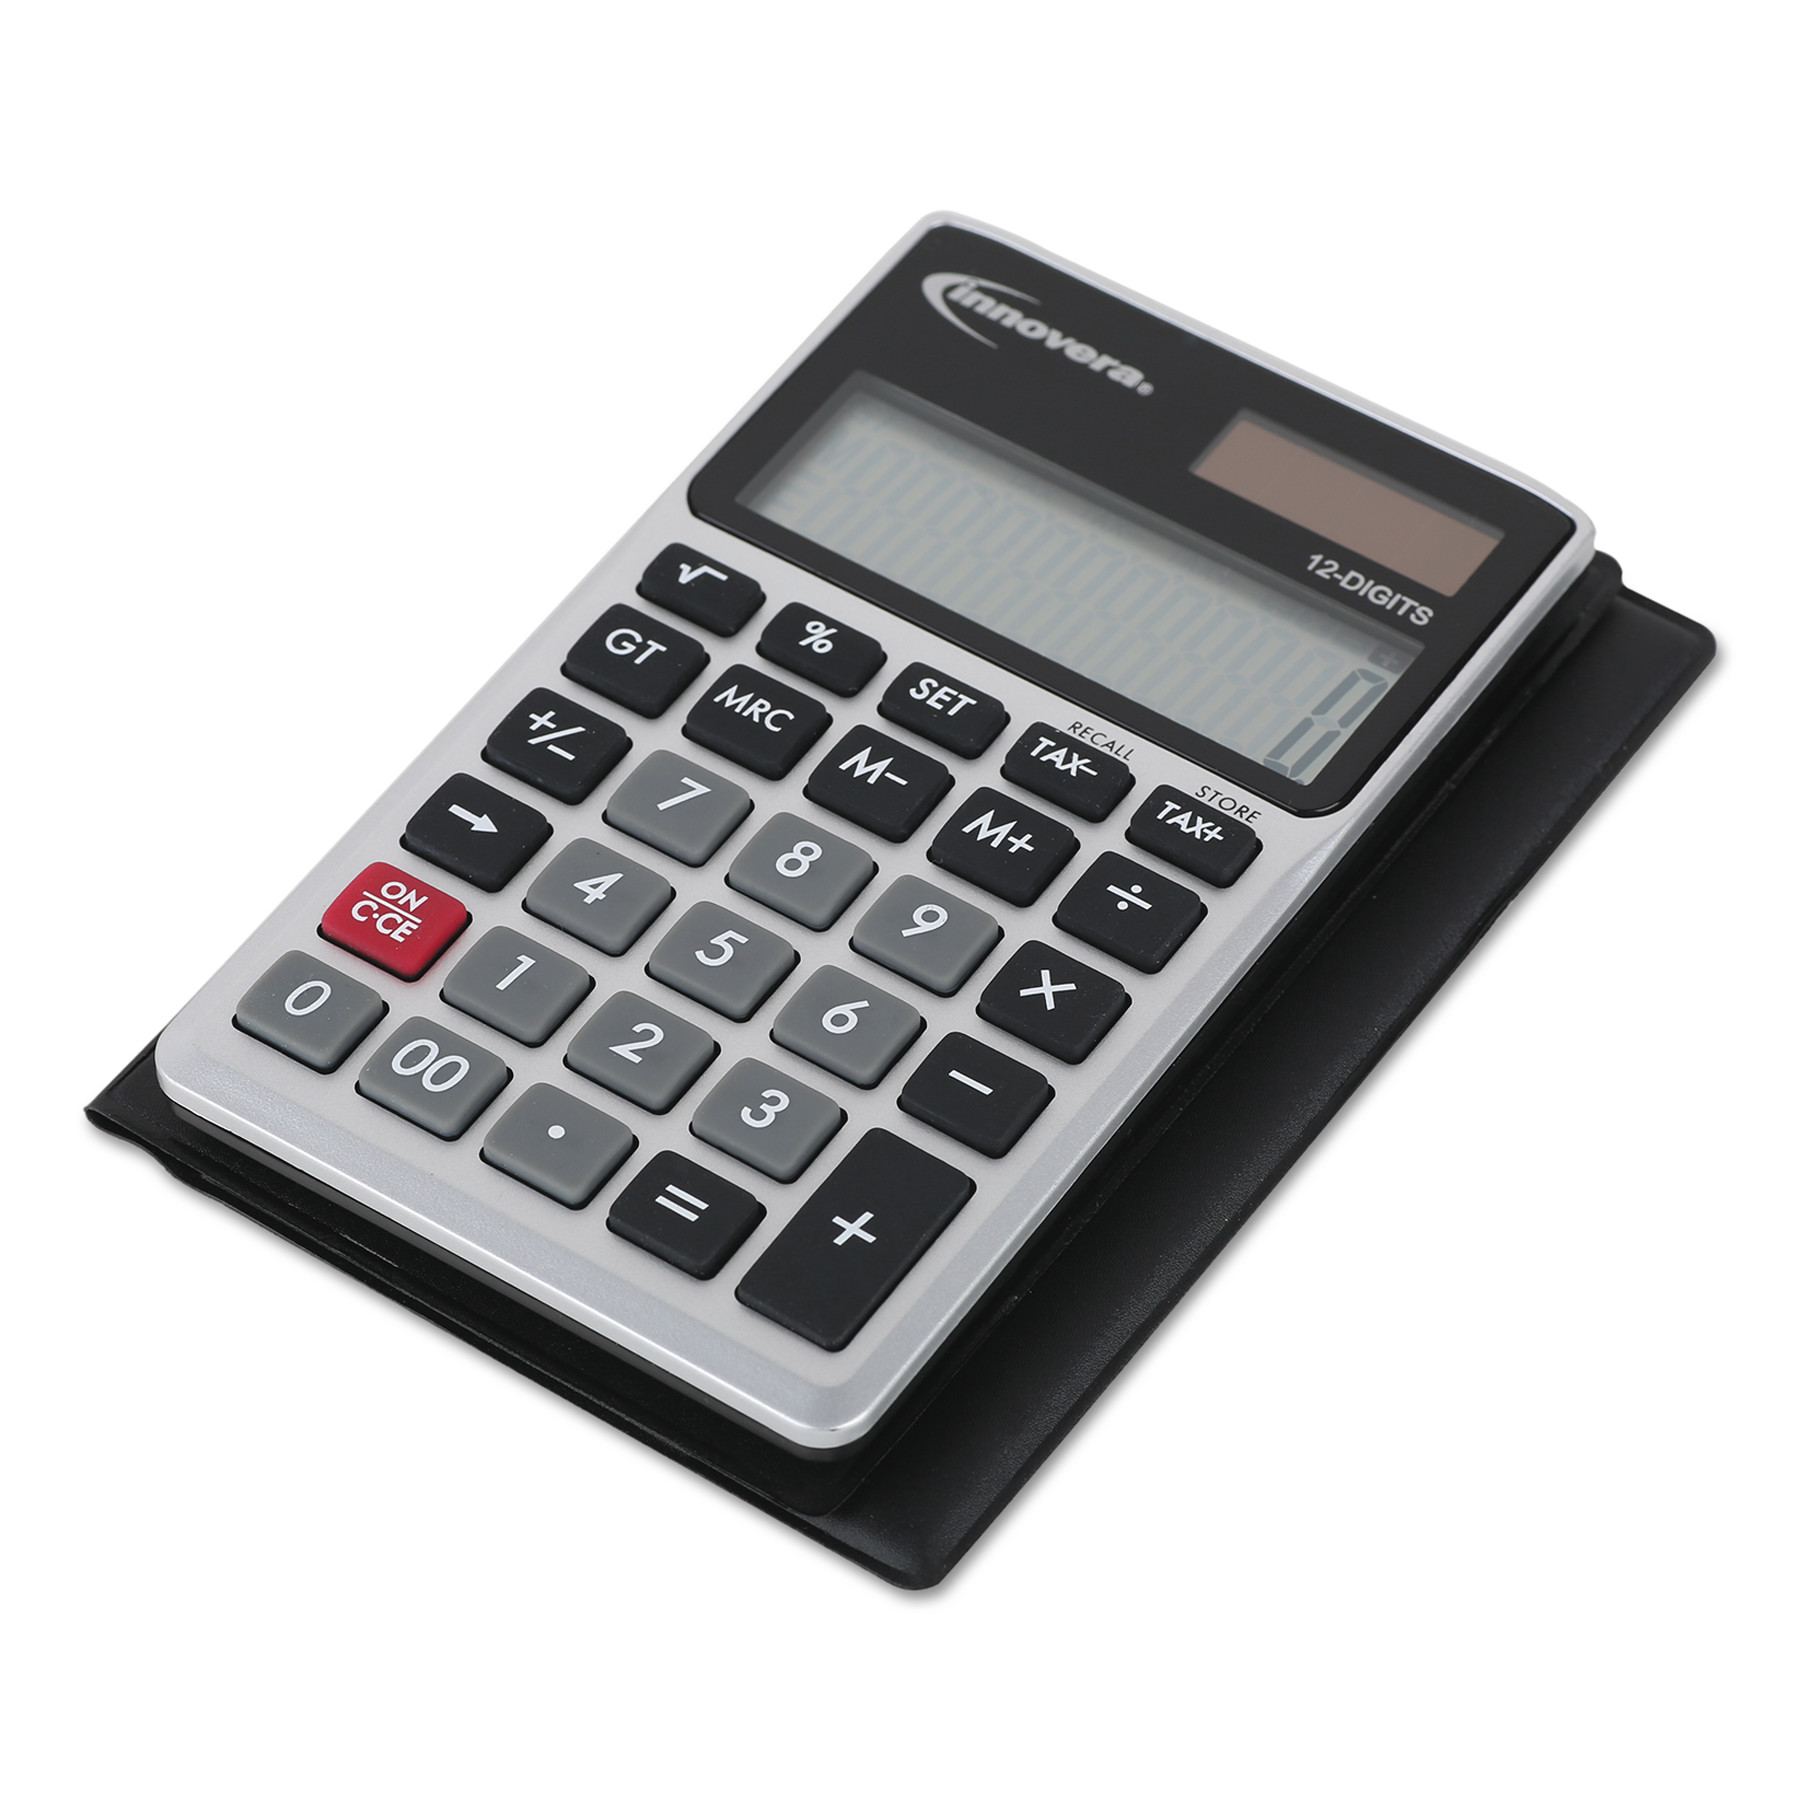 Innovera Handheld Calculator, 12-Digit LCD